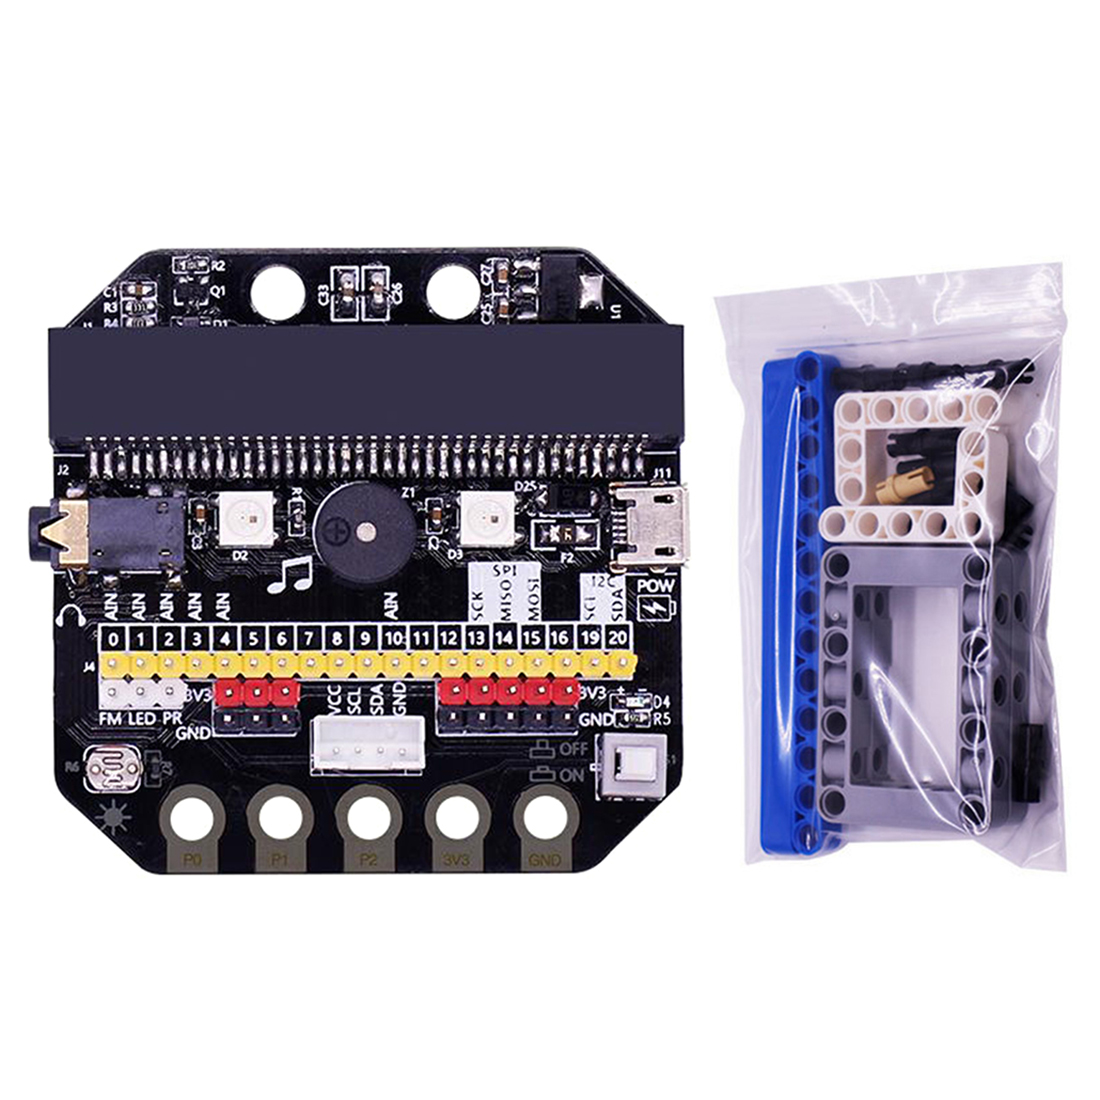 Basic:bit IO Expansion Board Horizontal Type Pinboard Microbit Python Development Board With Expansion Pack For Micro:bit